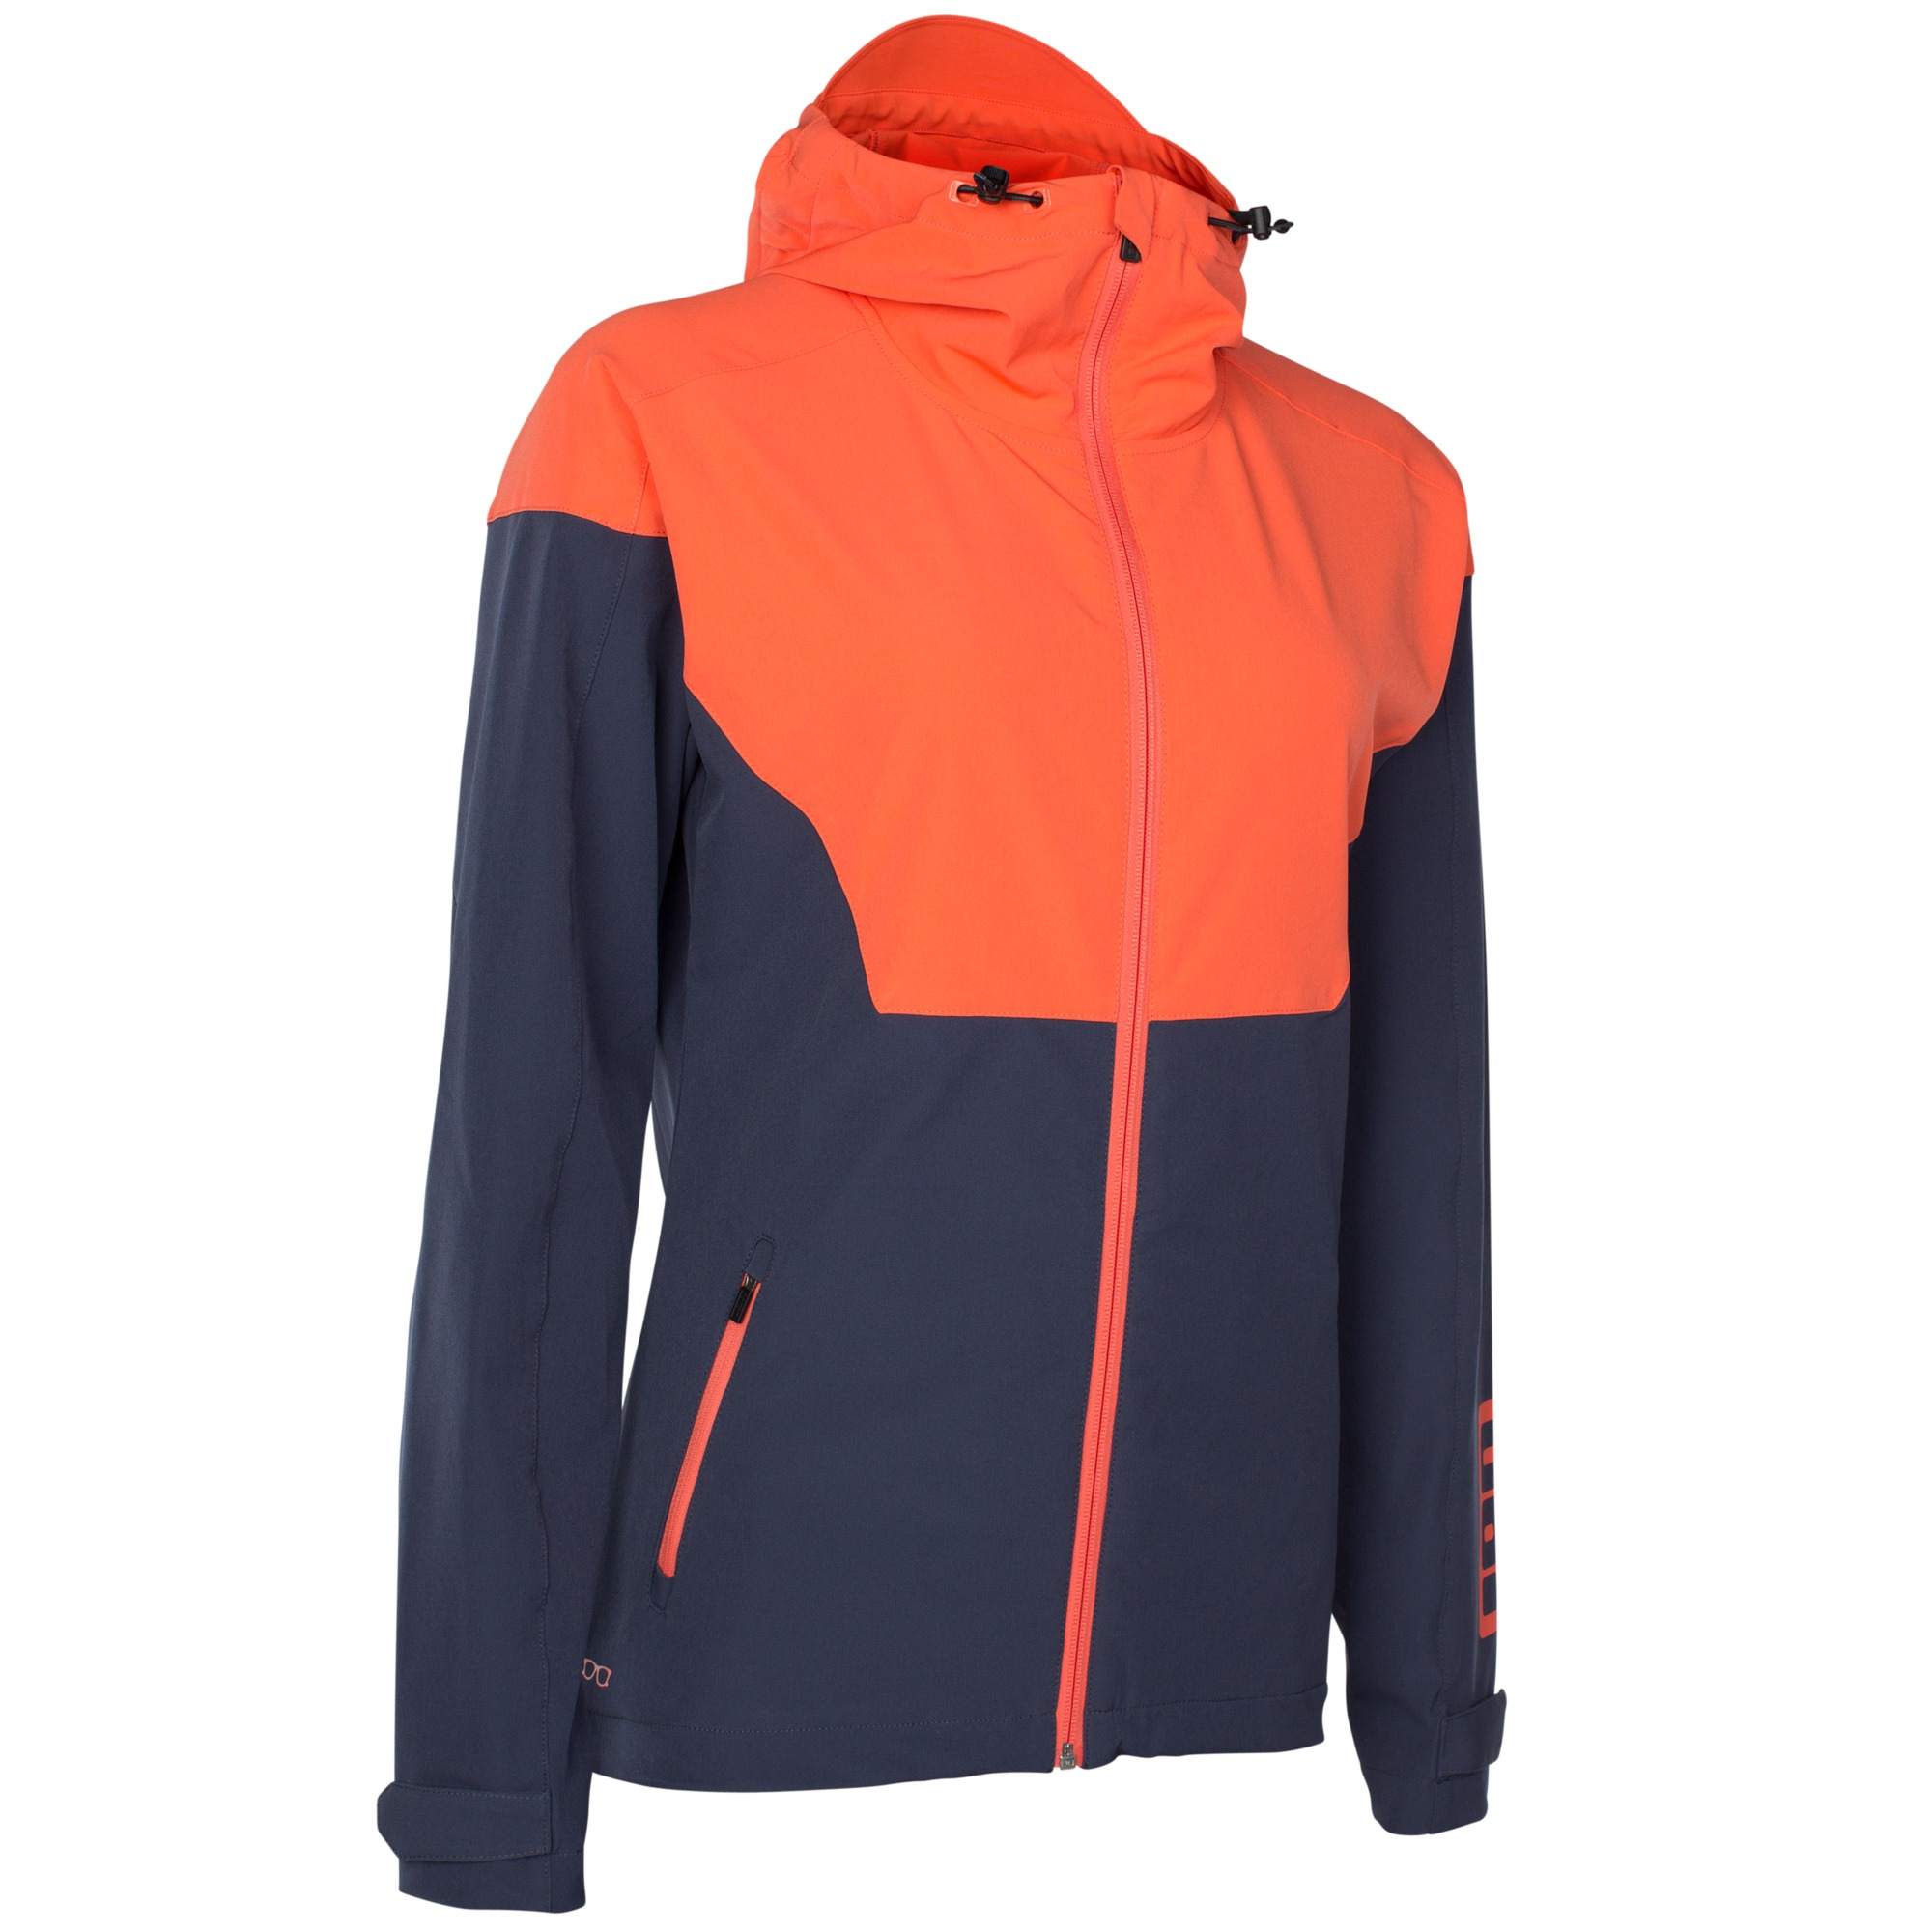 img_produse/ion_softshell_jacket_shelter_wms_hot_coral_1_822_23.03.18_3247.jpg